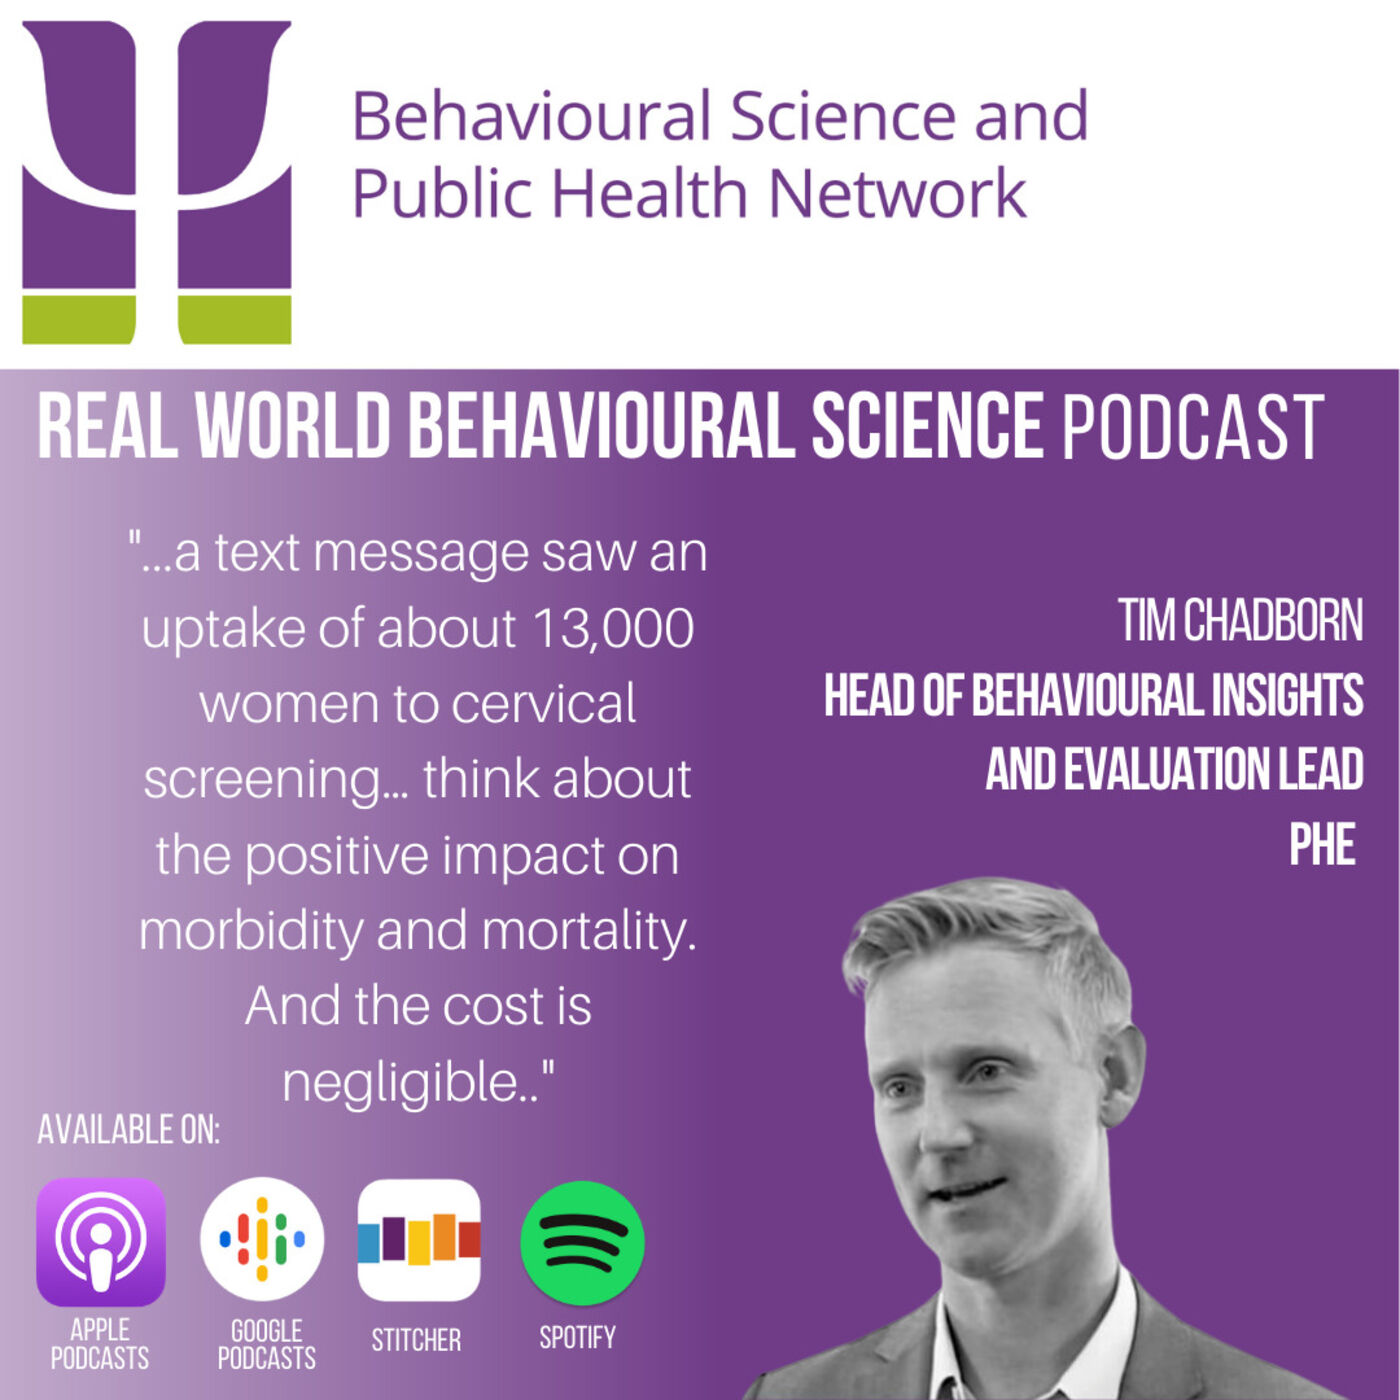 Dr Tim Chadborn (Head of Behavioural Insights & Evaluation Lead at Public Health England)